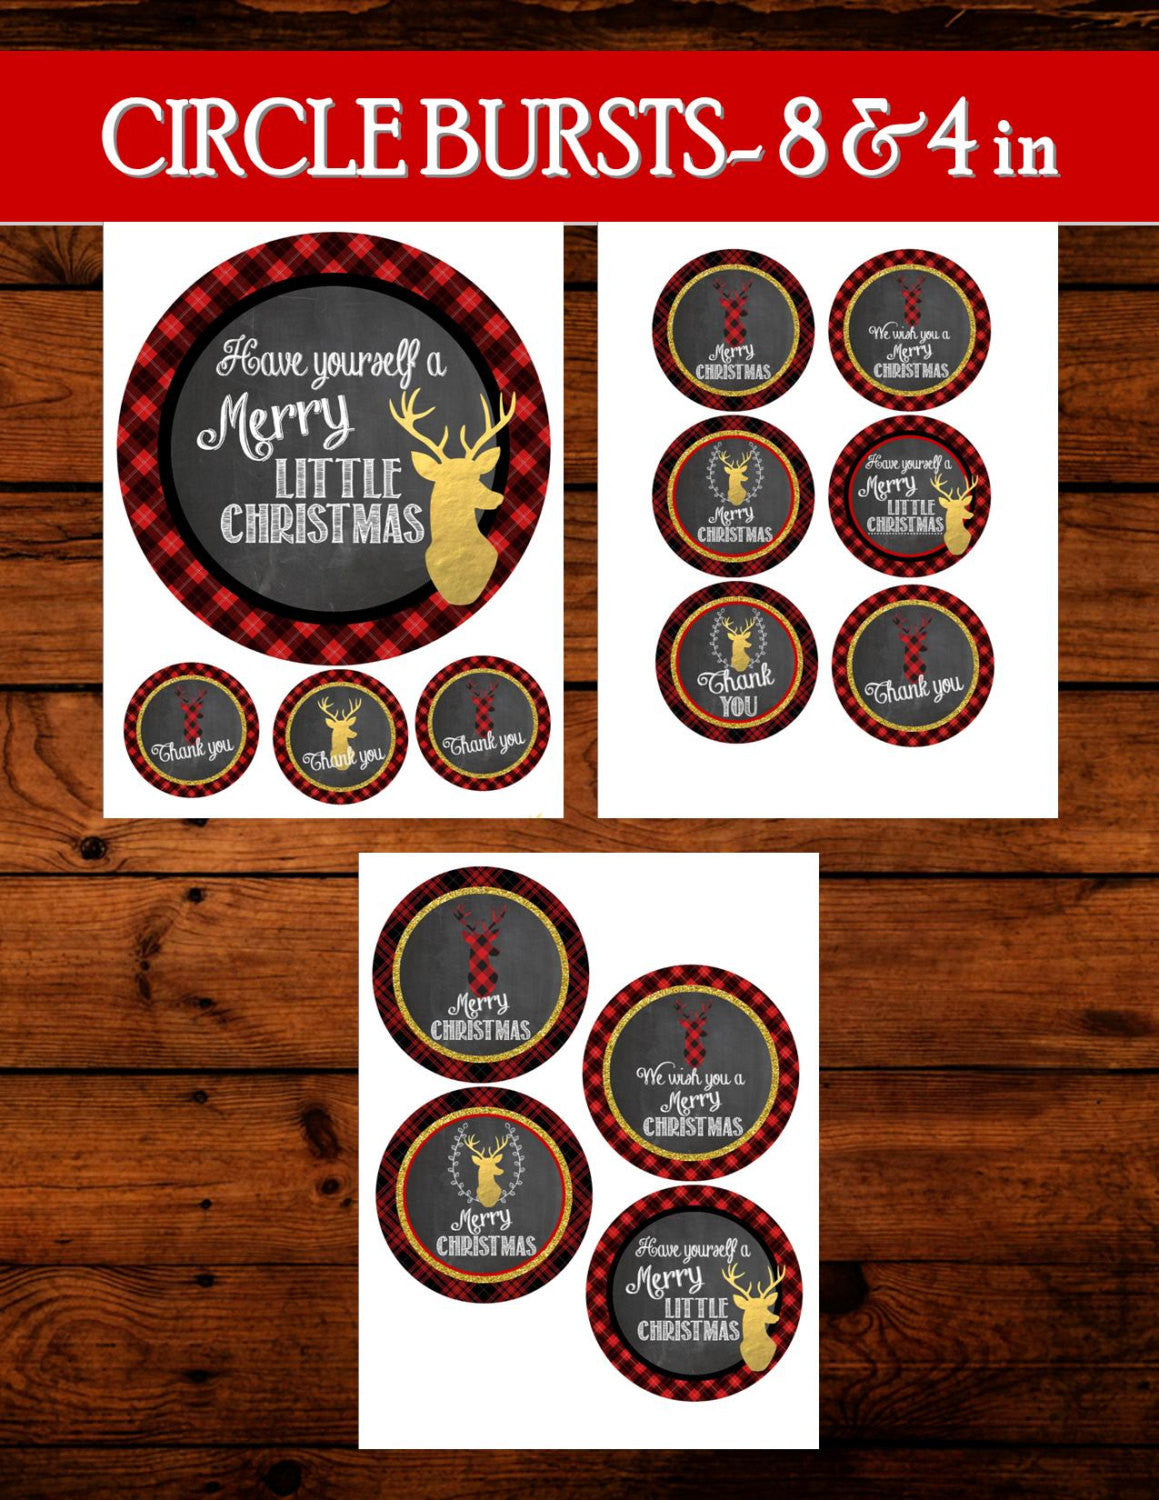 DEER Party- Reindeer- Plaid- Christmas Party- BURSTS- Plaid Christmas Decorations- Tartan